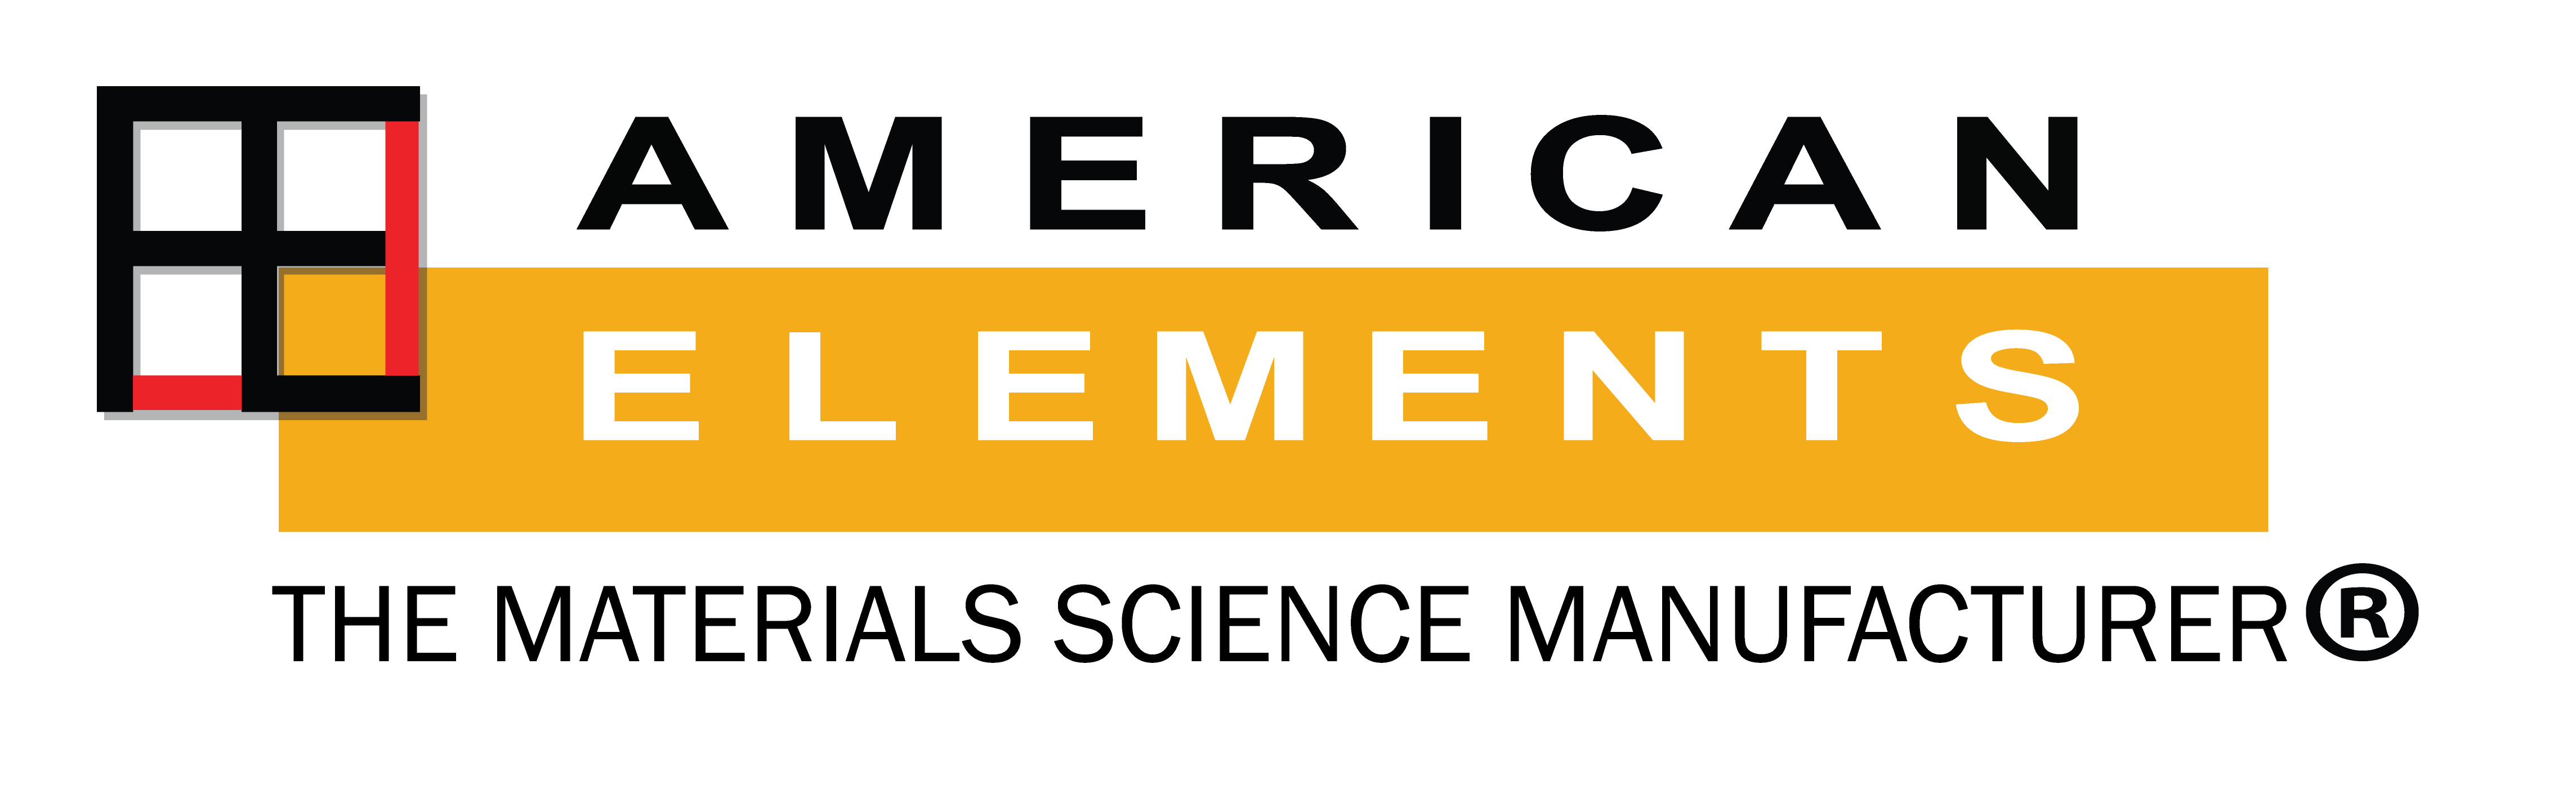 American Elements, global manufacturer of high purity metals, substrates, laser crystals, advanced materials for semiconductors, precursors, optoelectronics, & LEDs